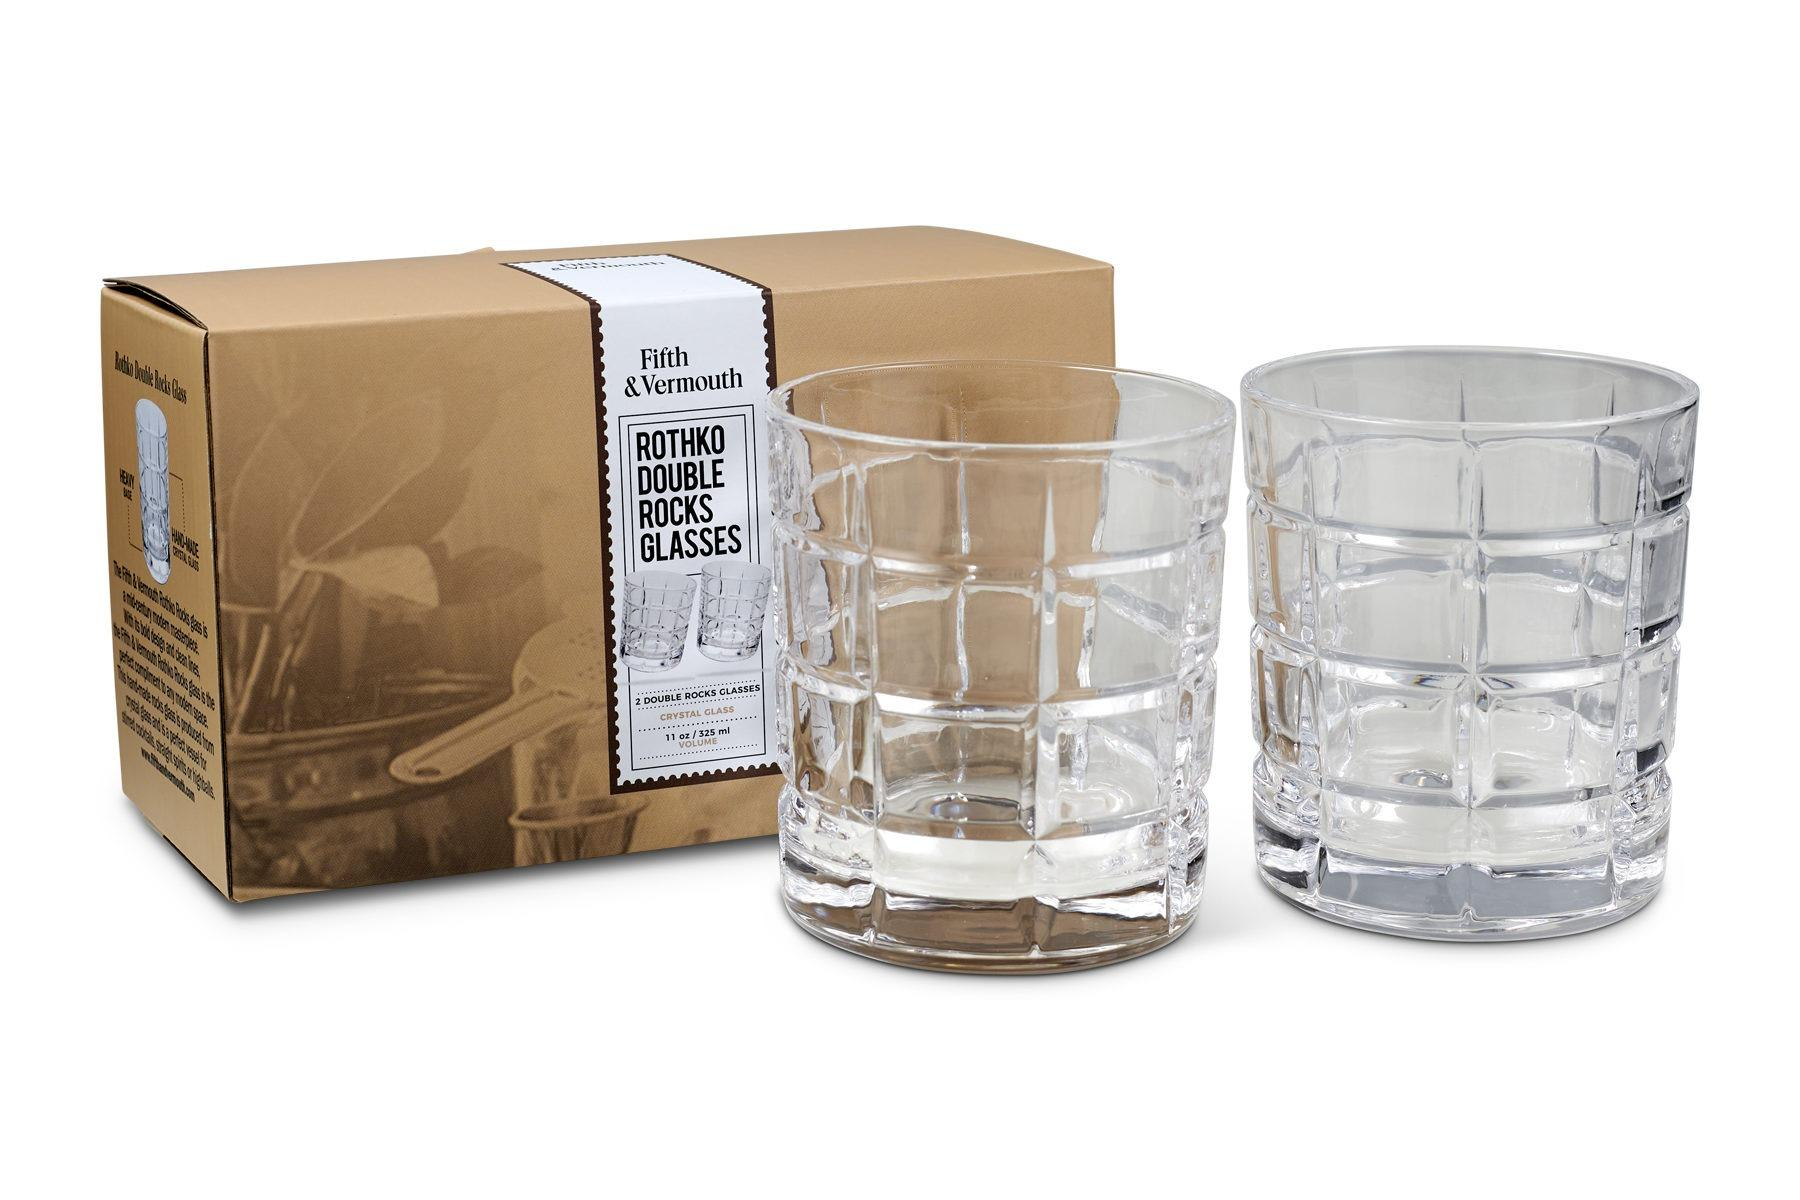 Rothko Double Rocks Glass Set 11oz with Packaging - Fifth & Vermouth